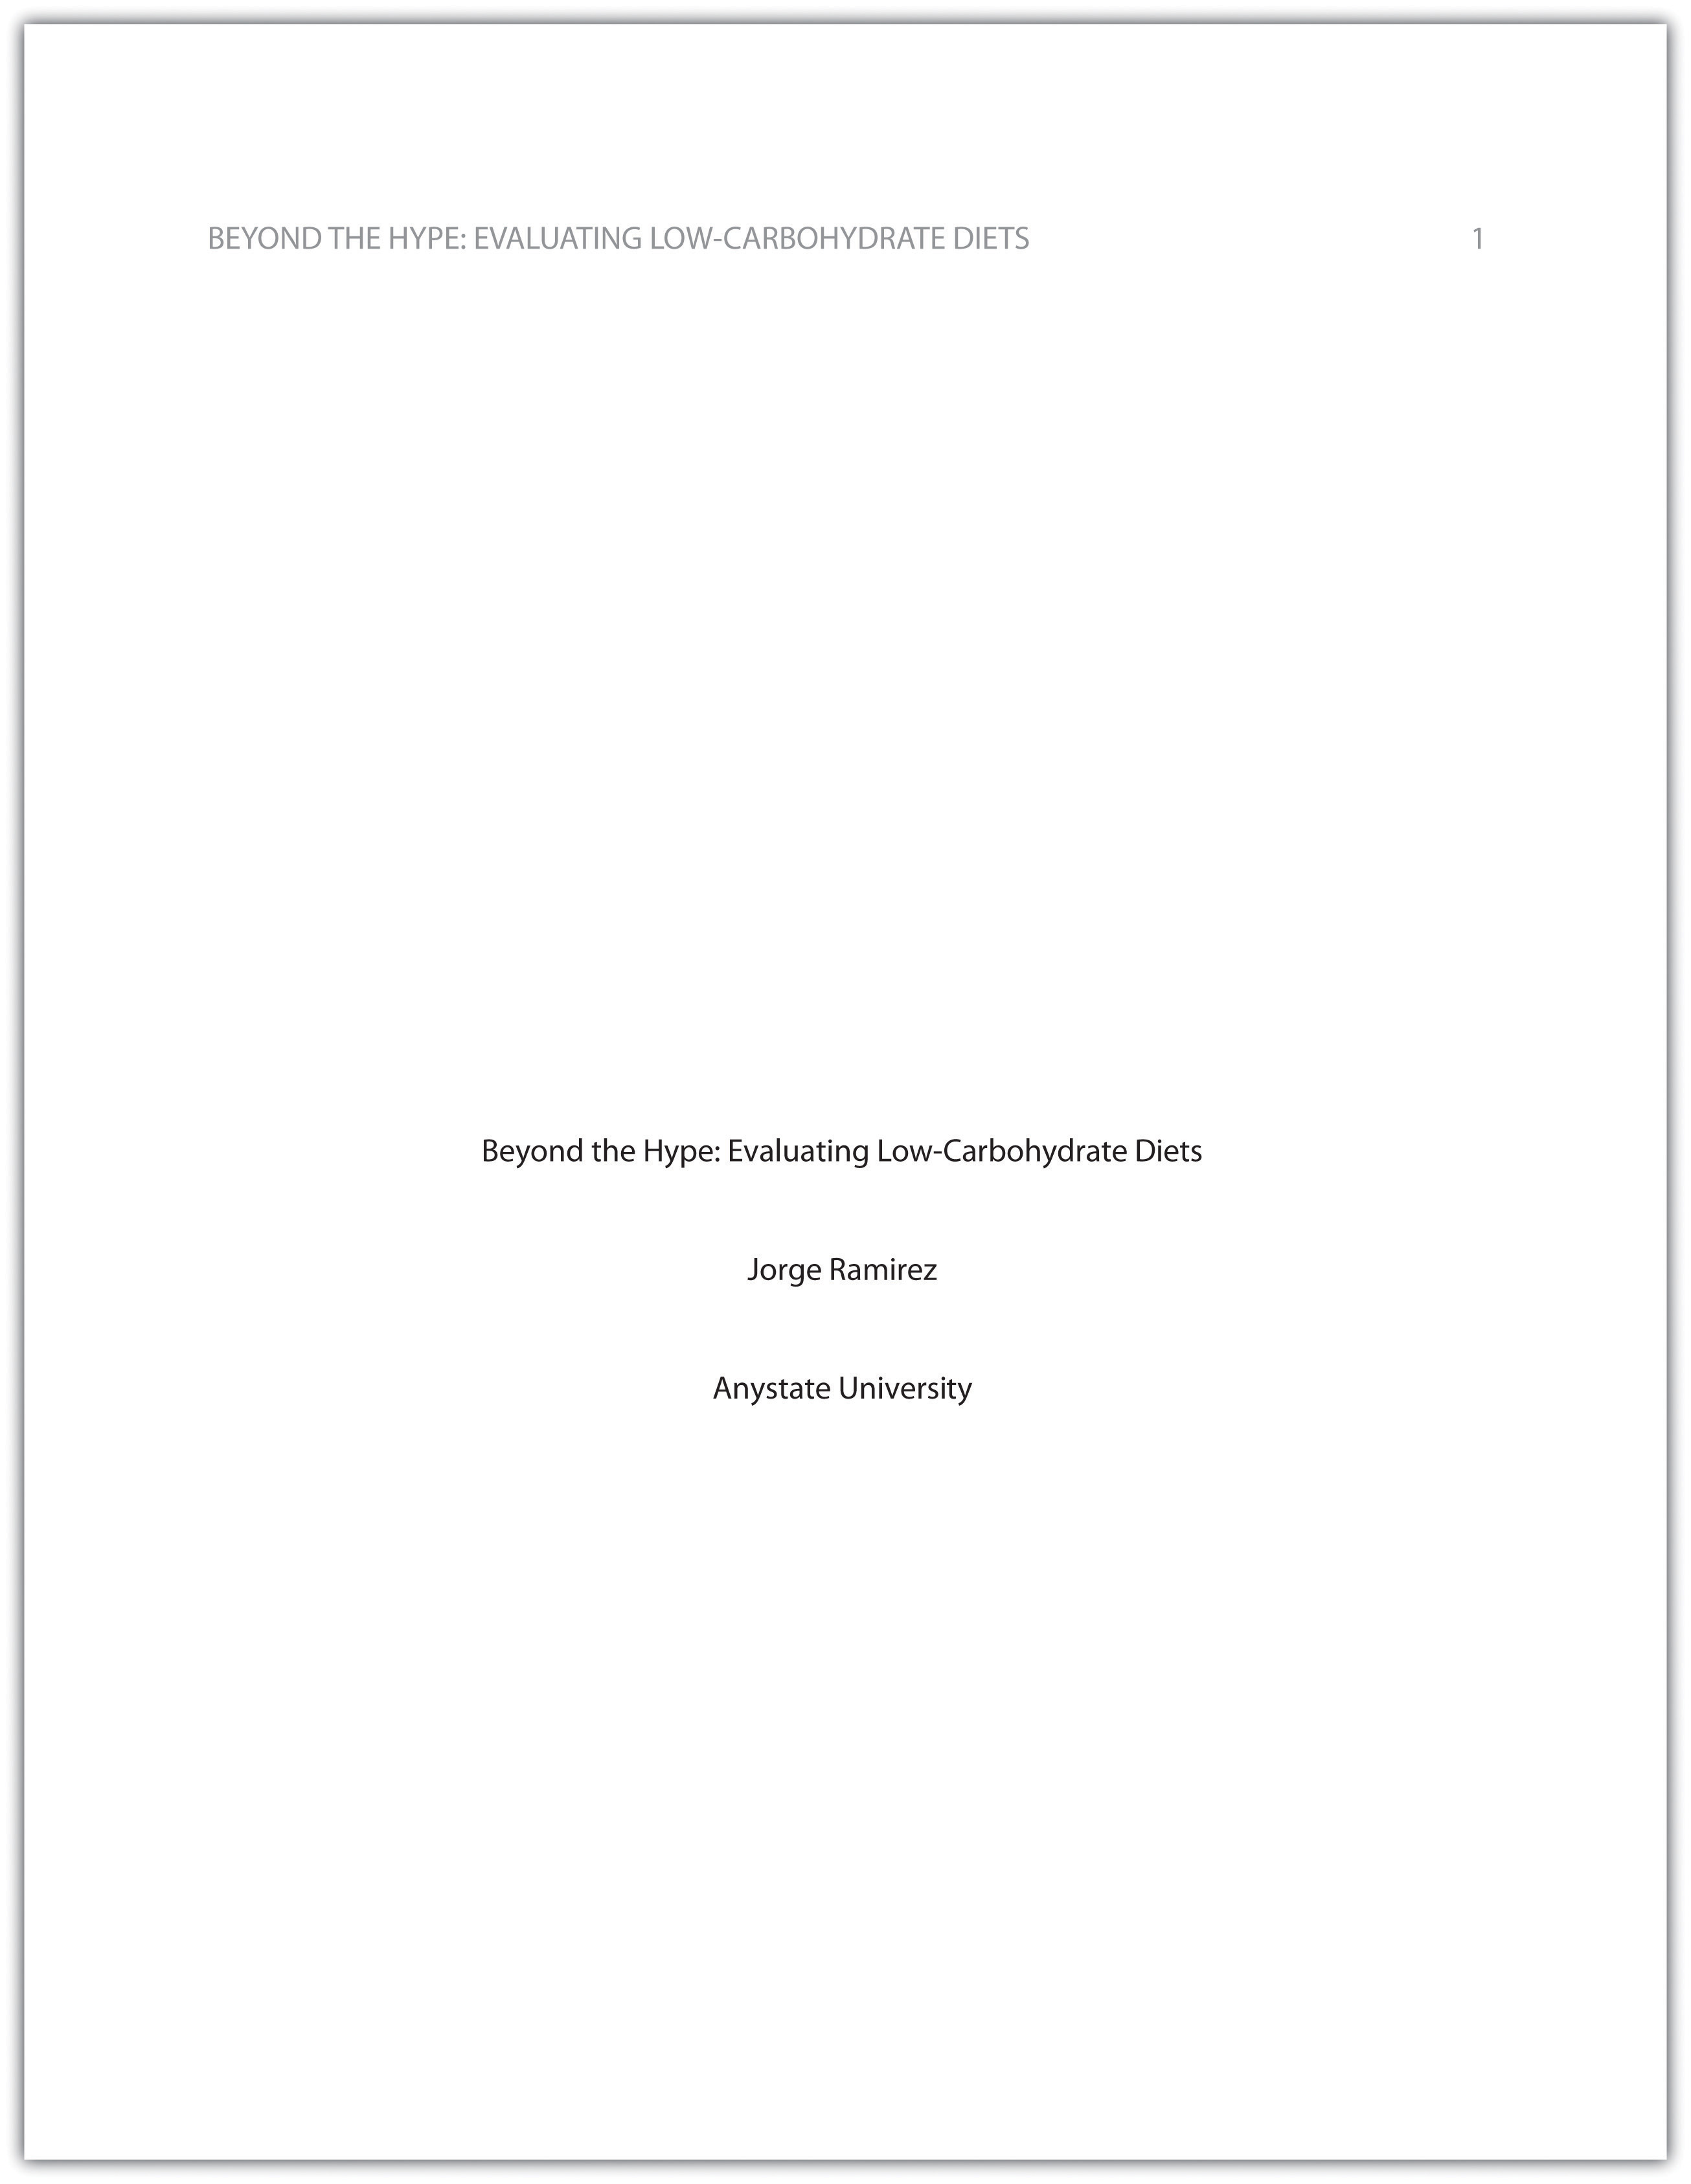 003 Cover Page Format For Research Paper Astounding Title Layout A Example Full